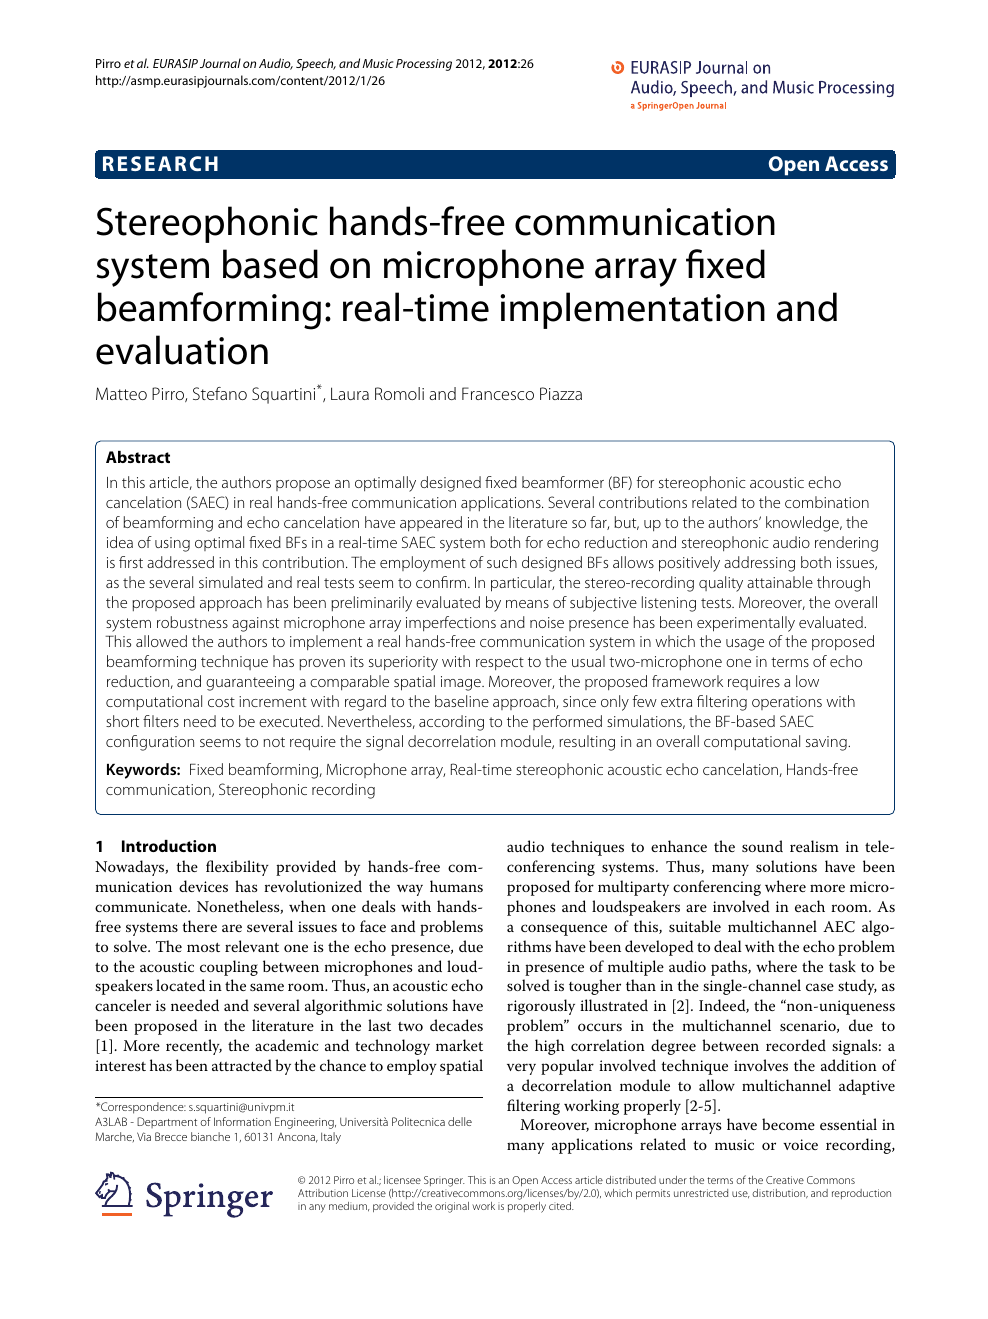 Stereophonic hands-free communication system based on